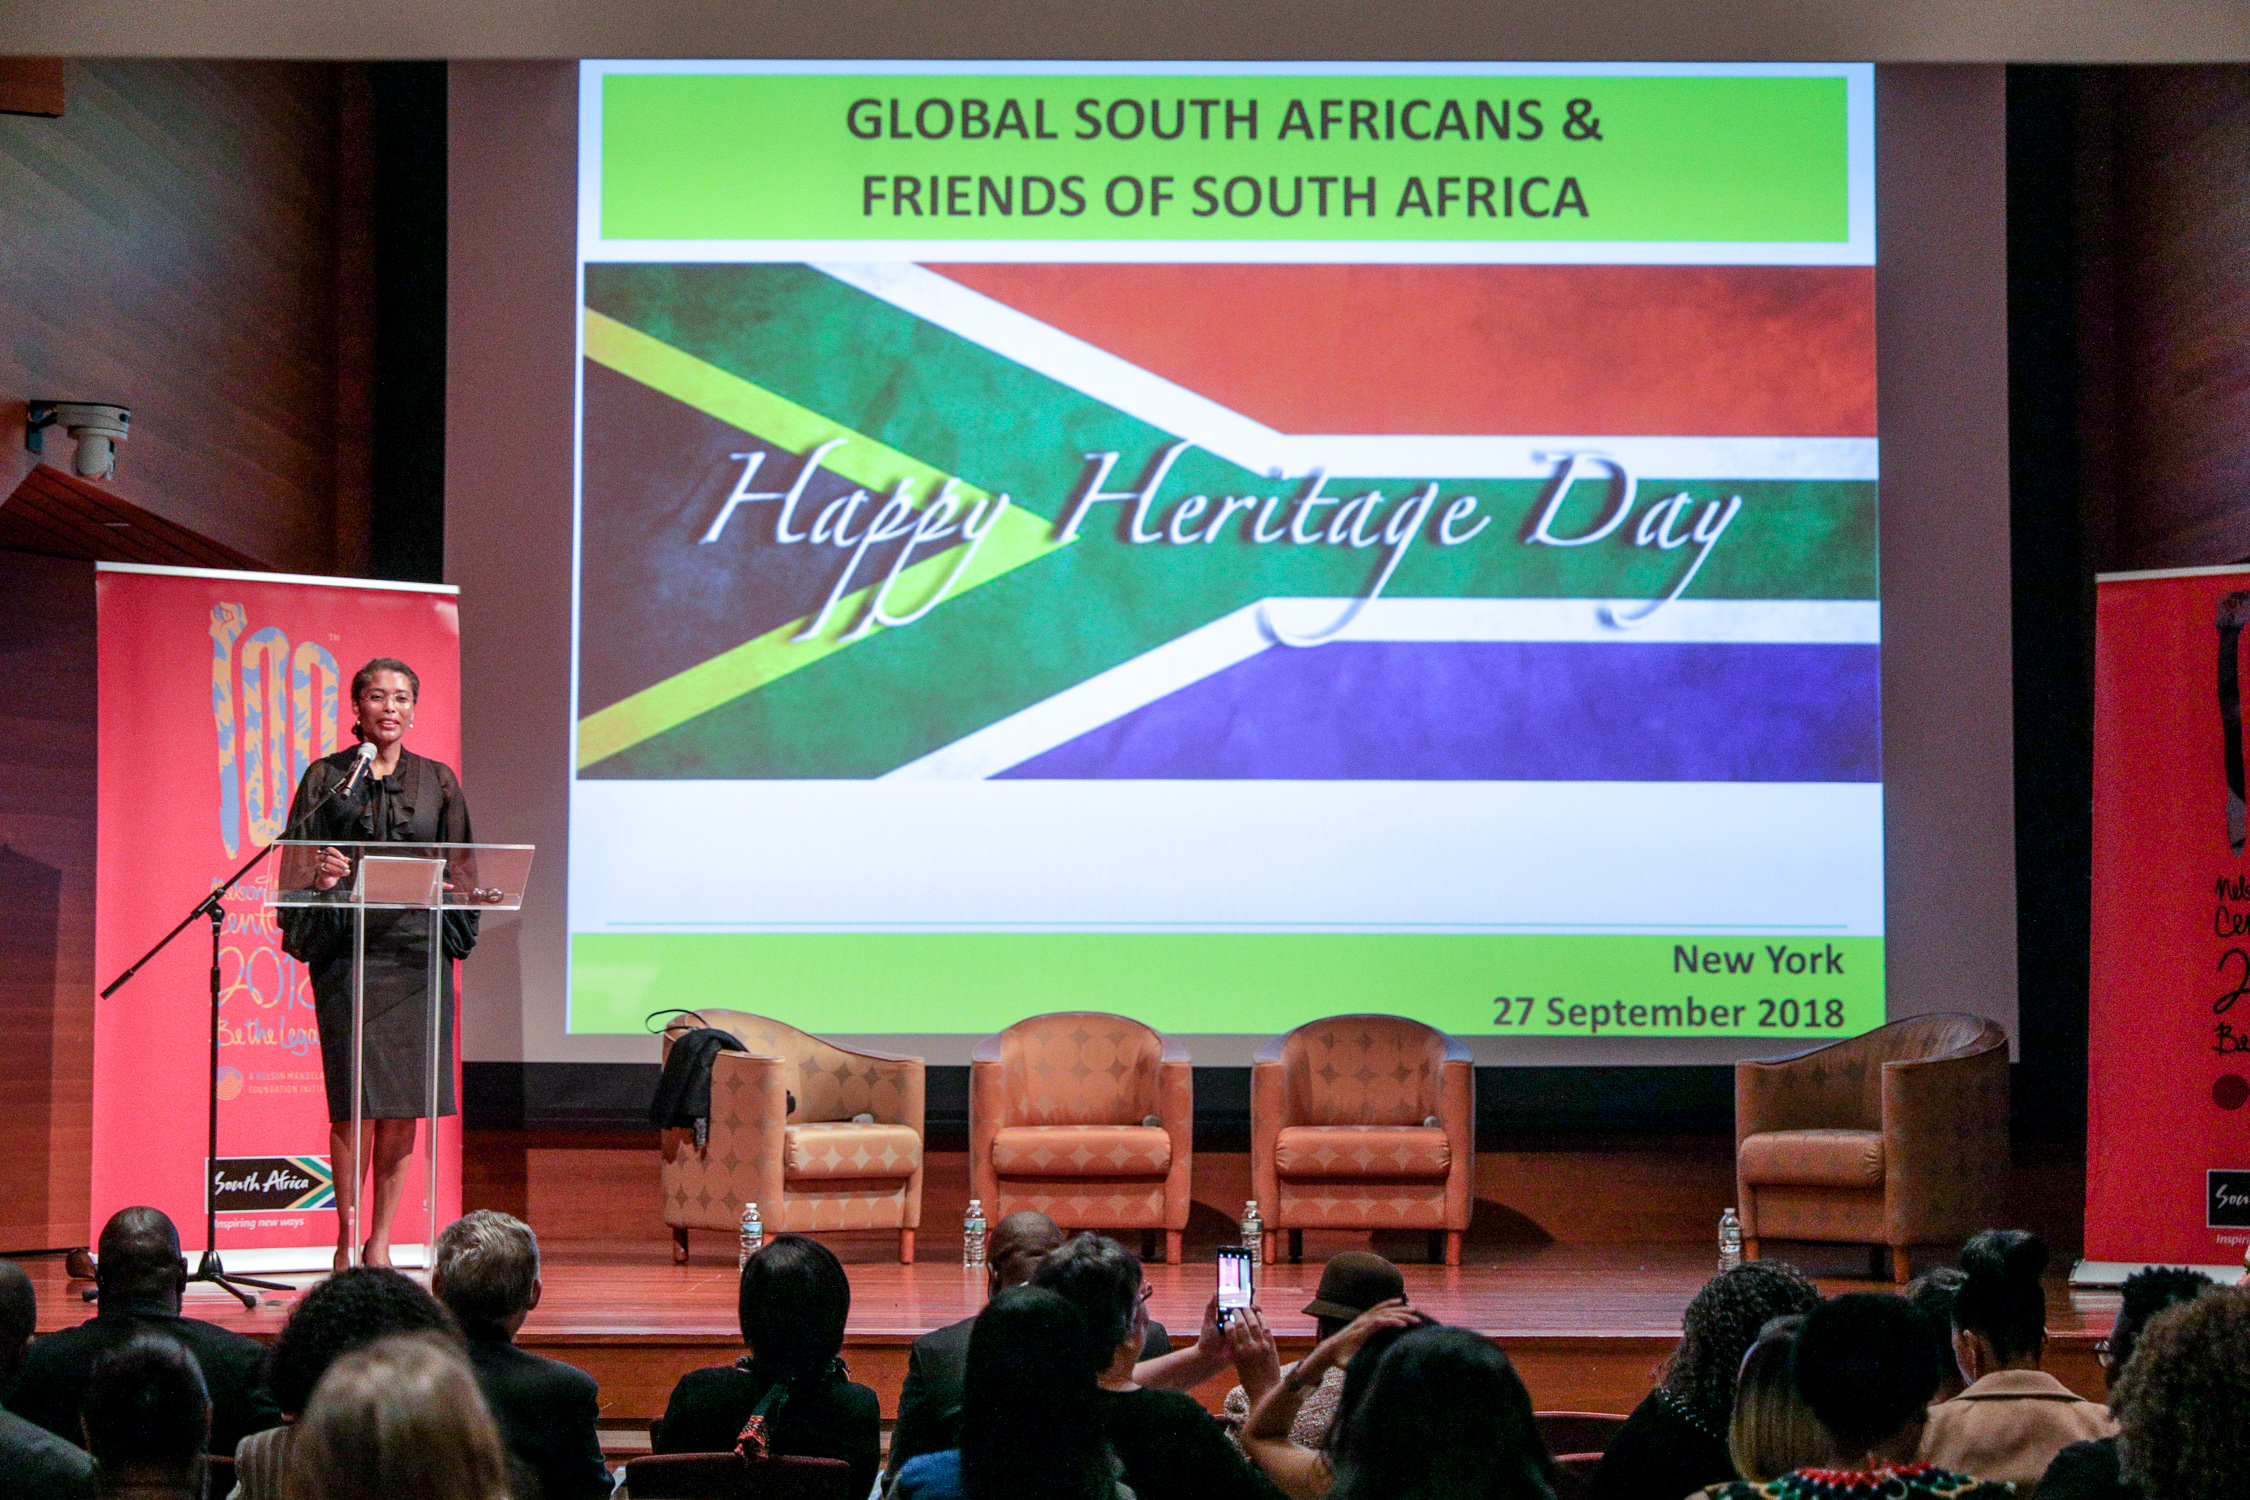 CEO of Brand South Africa, Ms. Thembi Kunene-Msimang